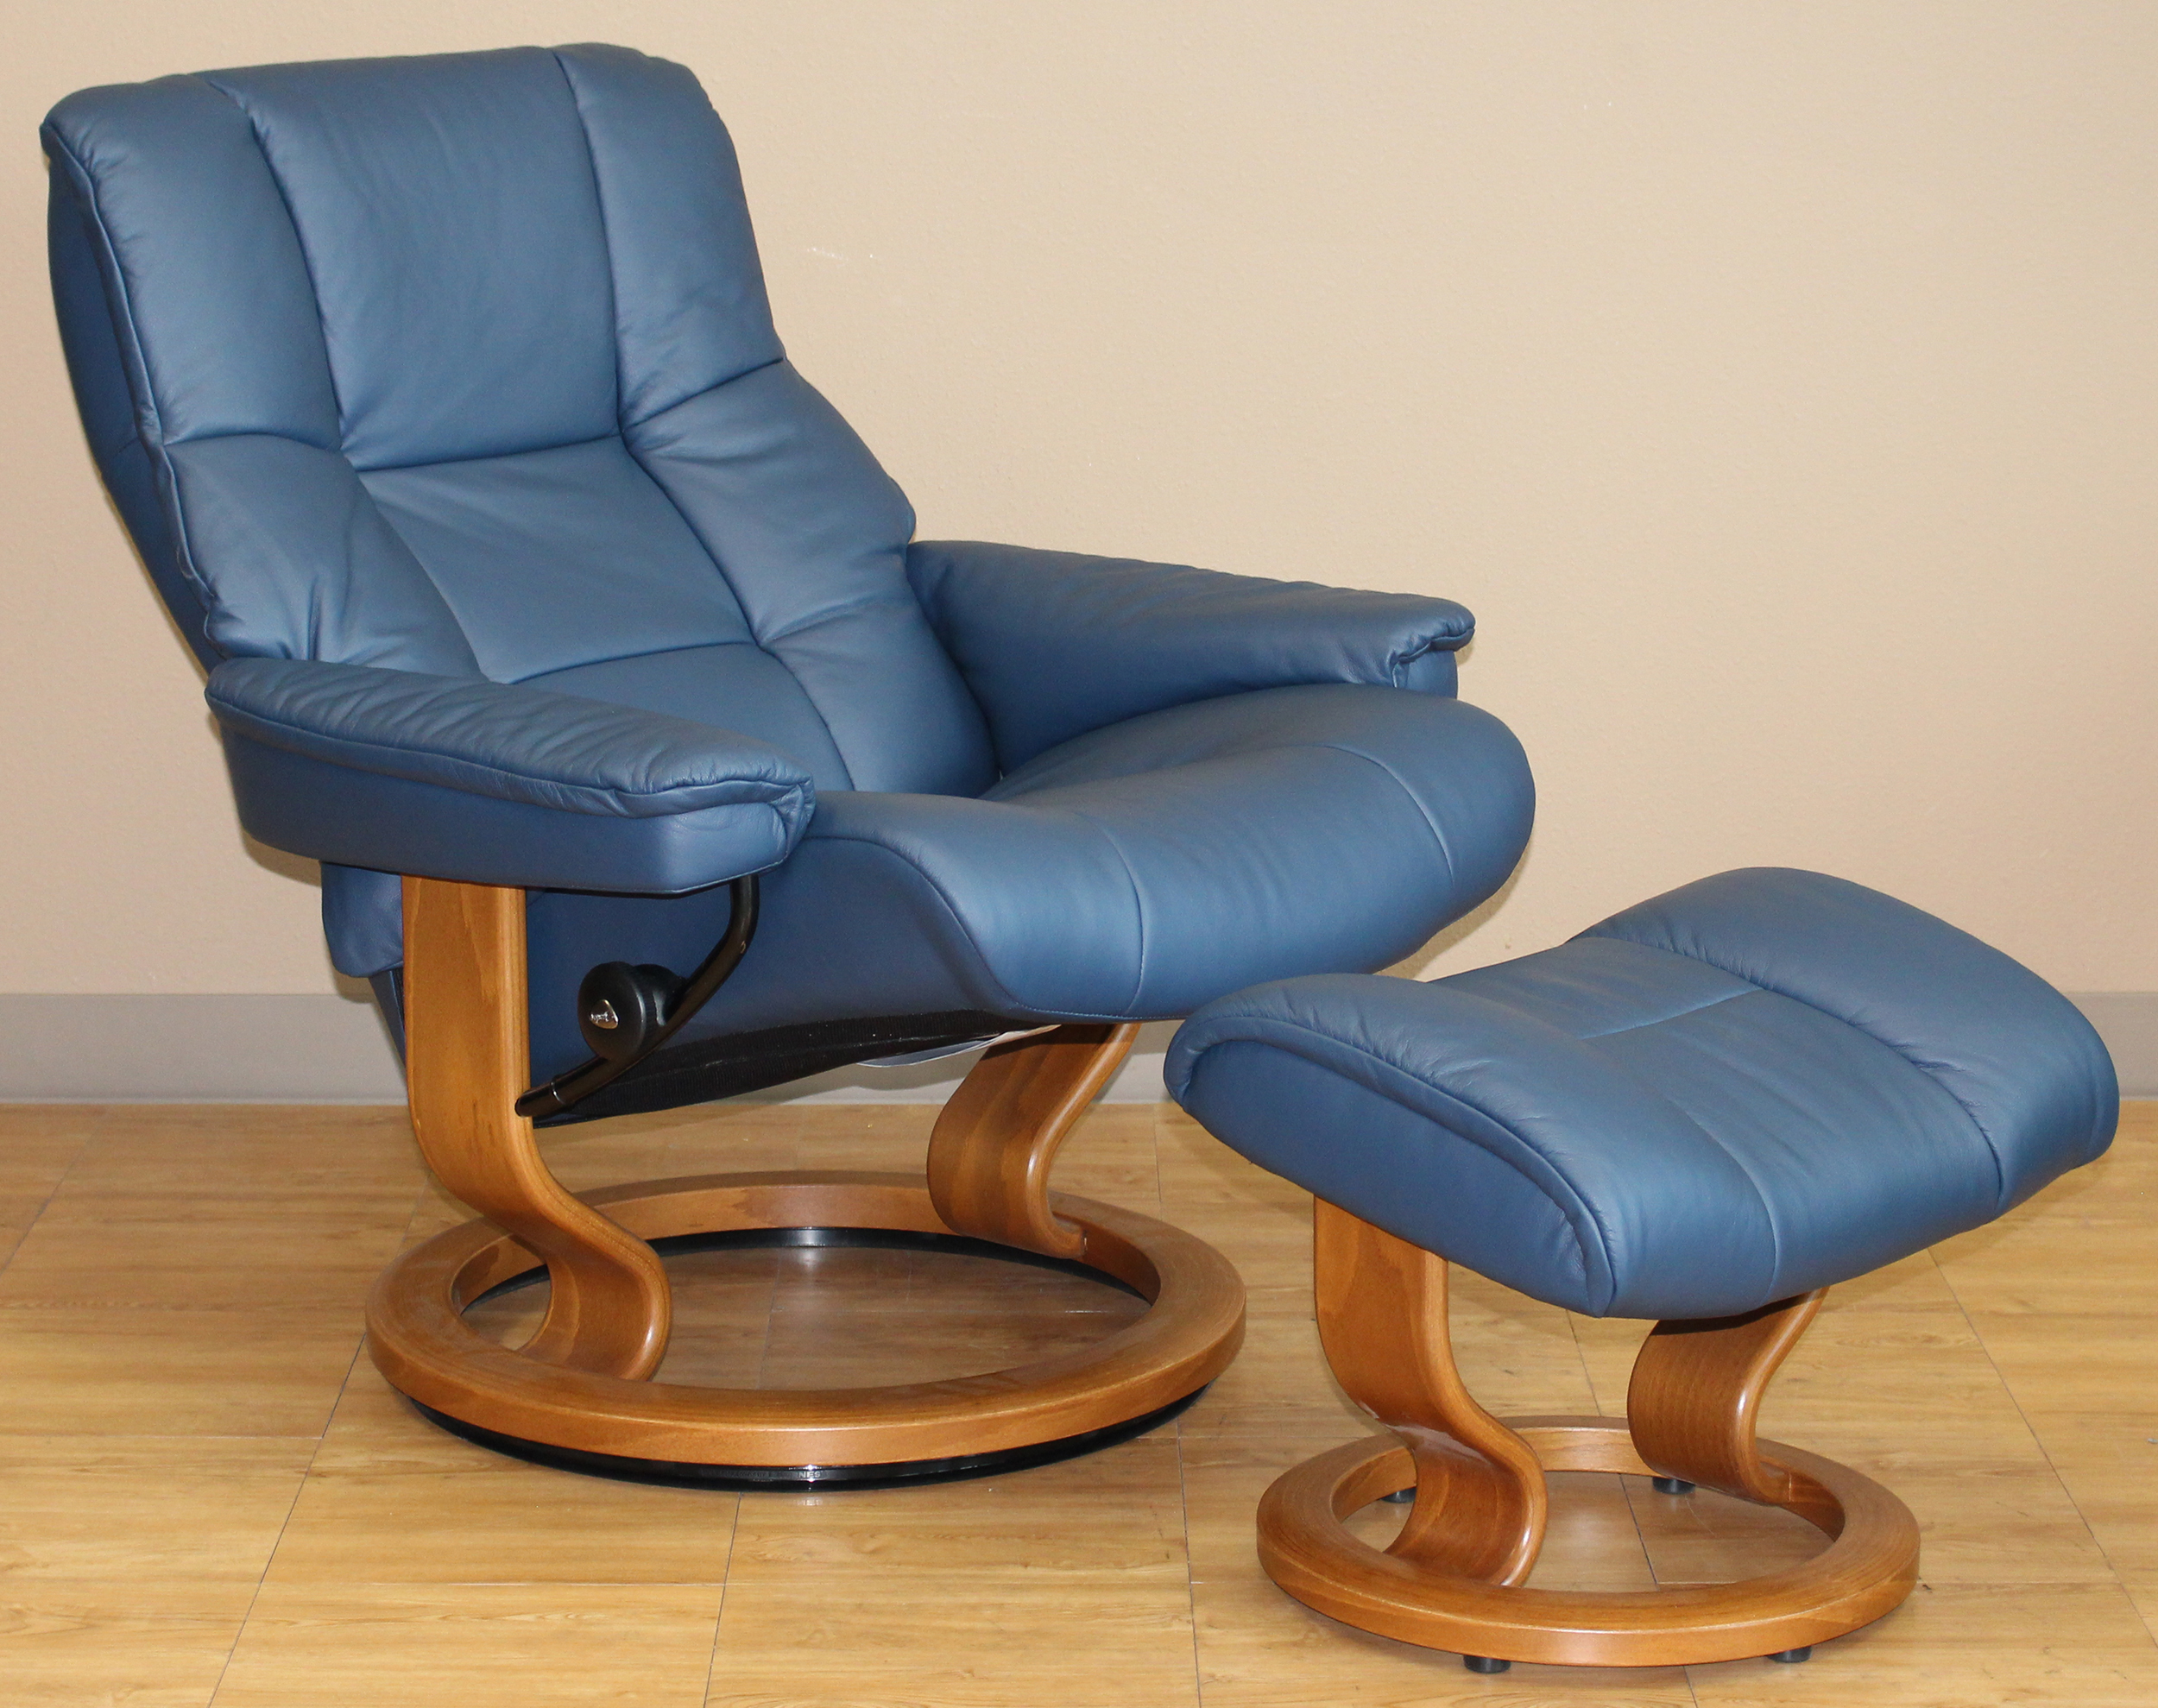 Stressless Mayfair Medium Paloma Oxford Blue Leather Recliner Chair And Ottoman By Ekornes